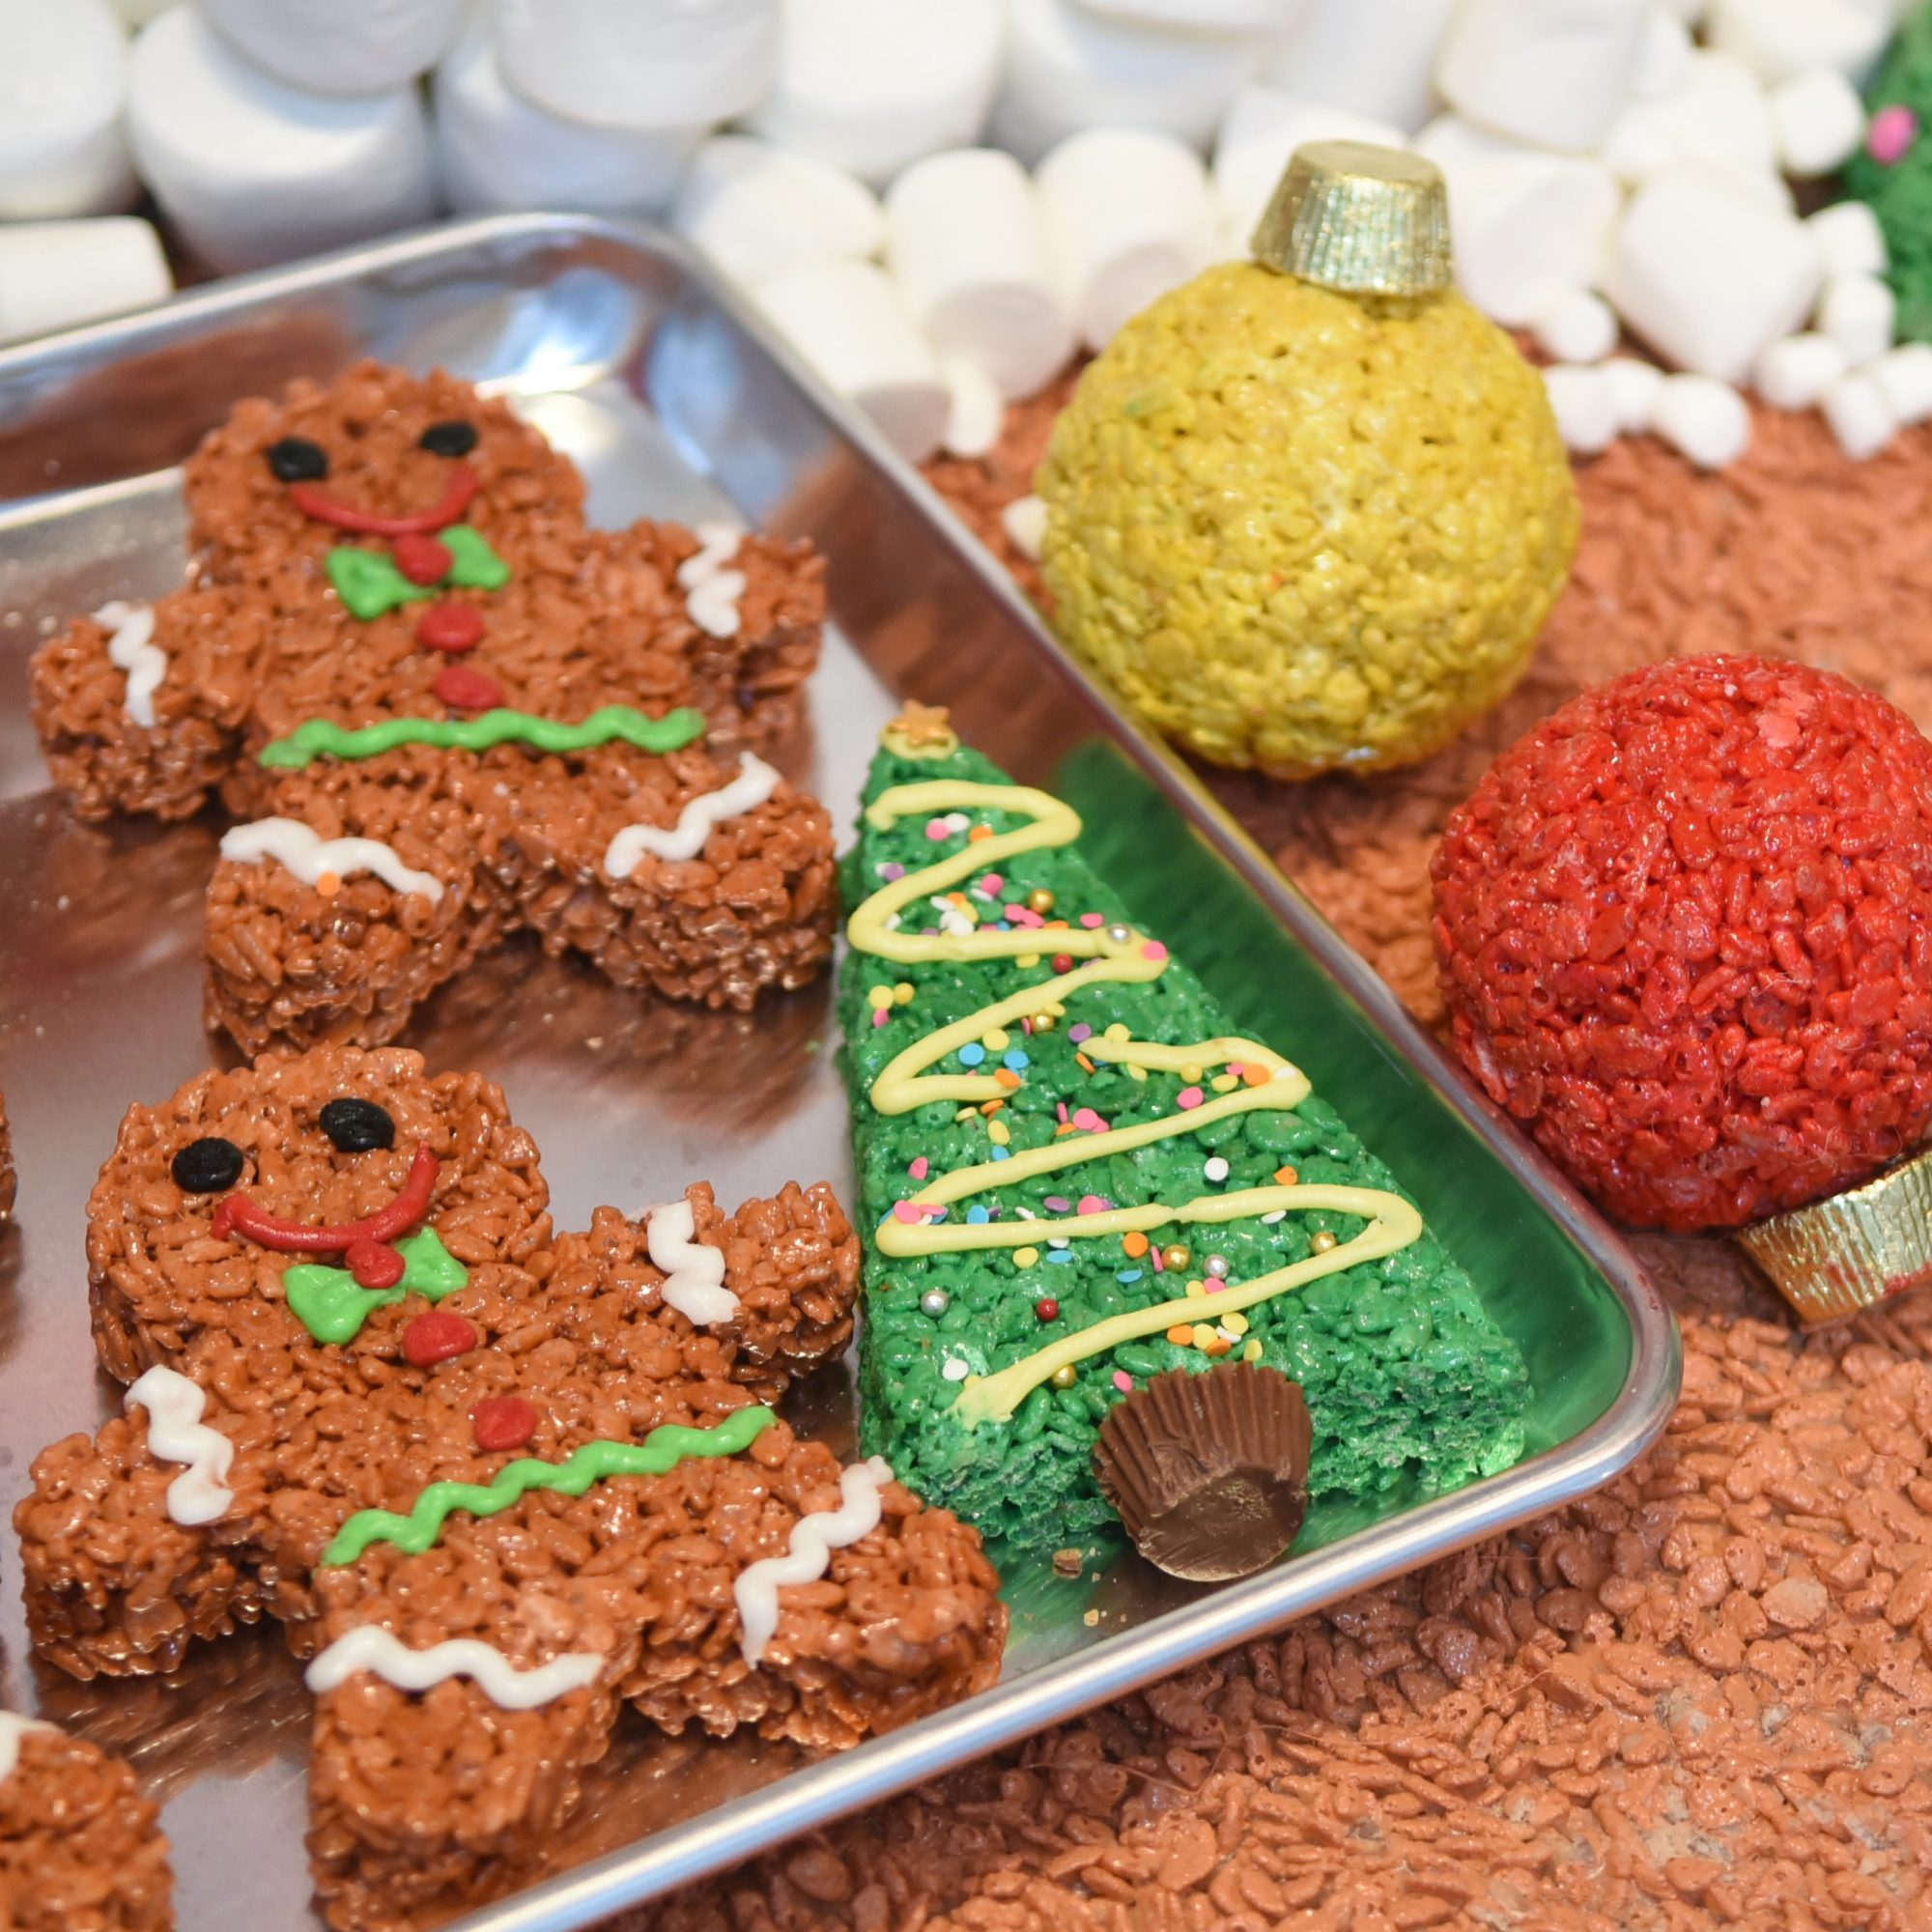 Snap a Rice Krispies Treat Photo And Make a Child's Day